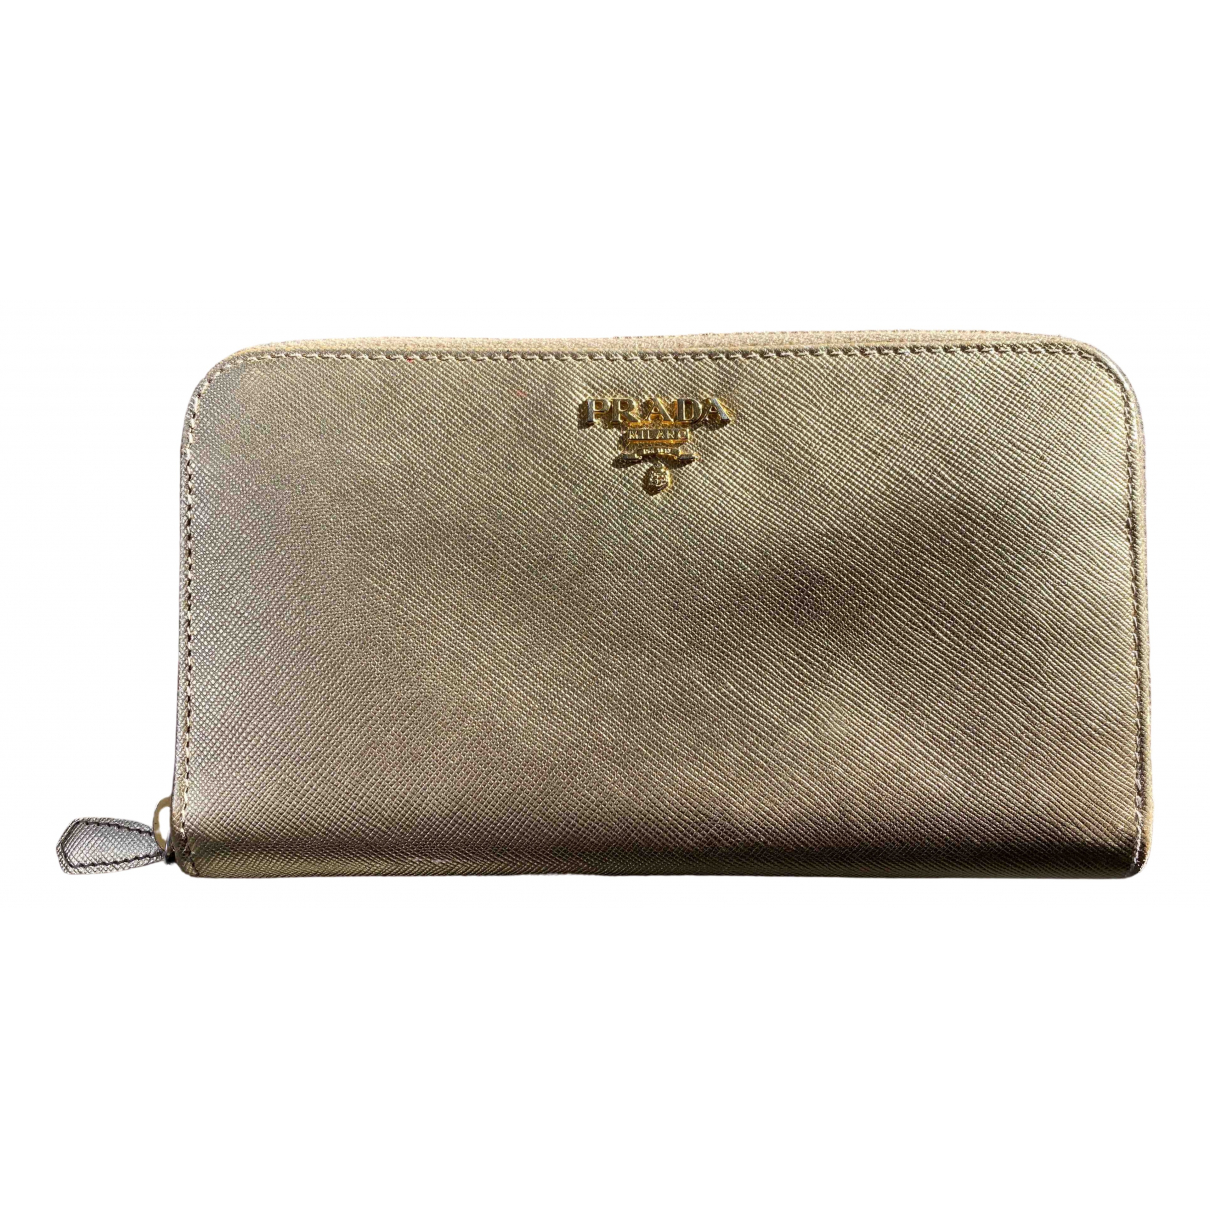 Prada N Gold Leather wallet for Women N